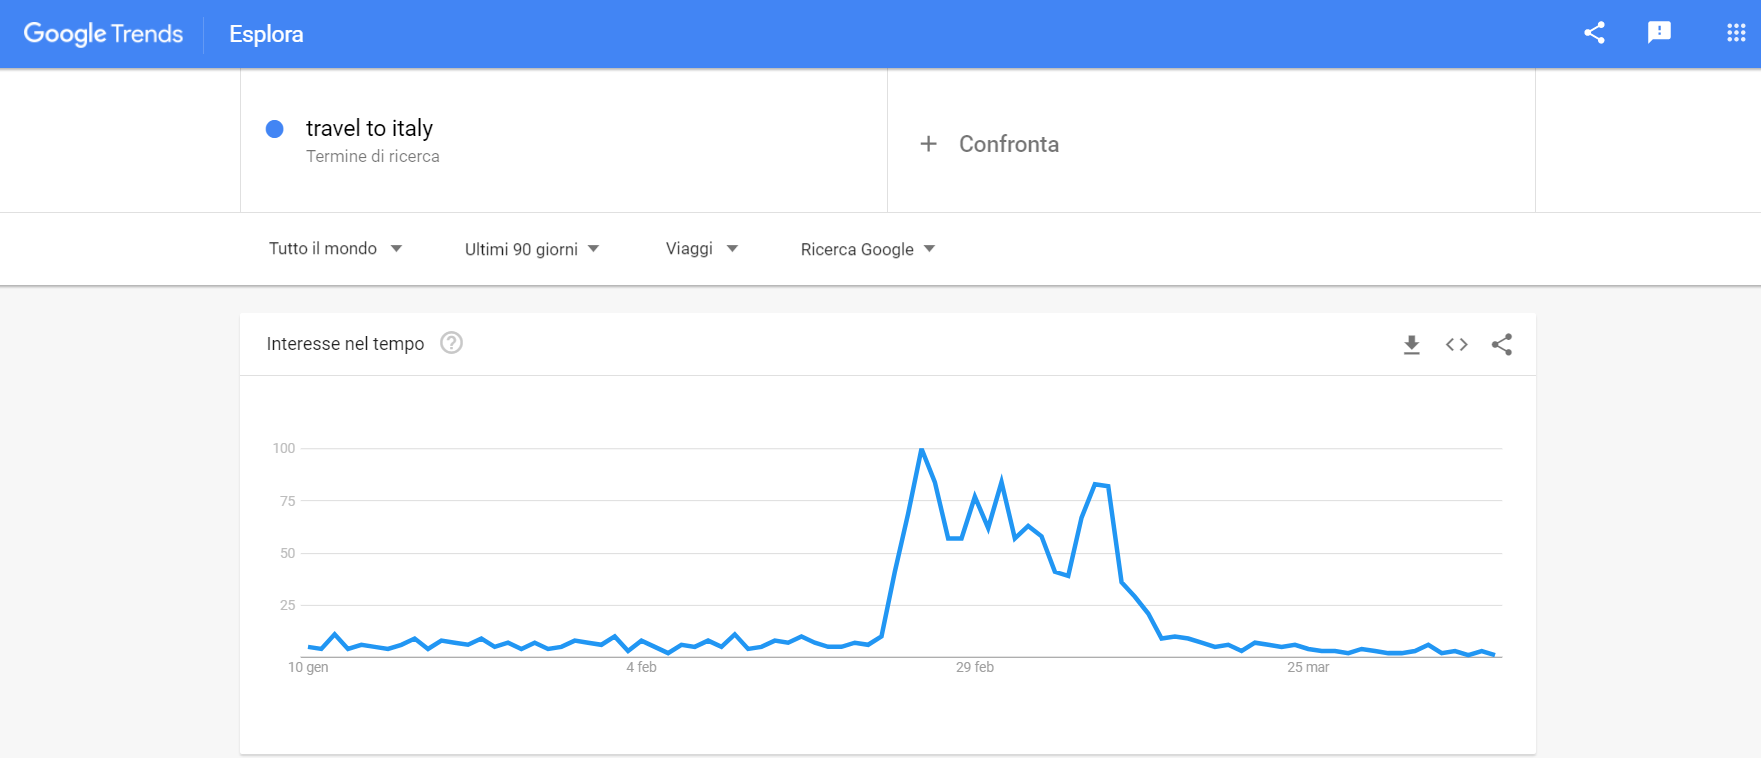 calo della keyword travel to italy in google trends